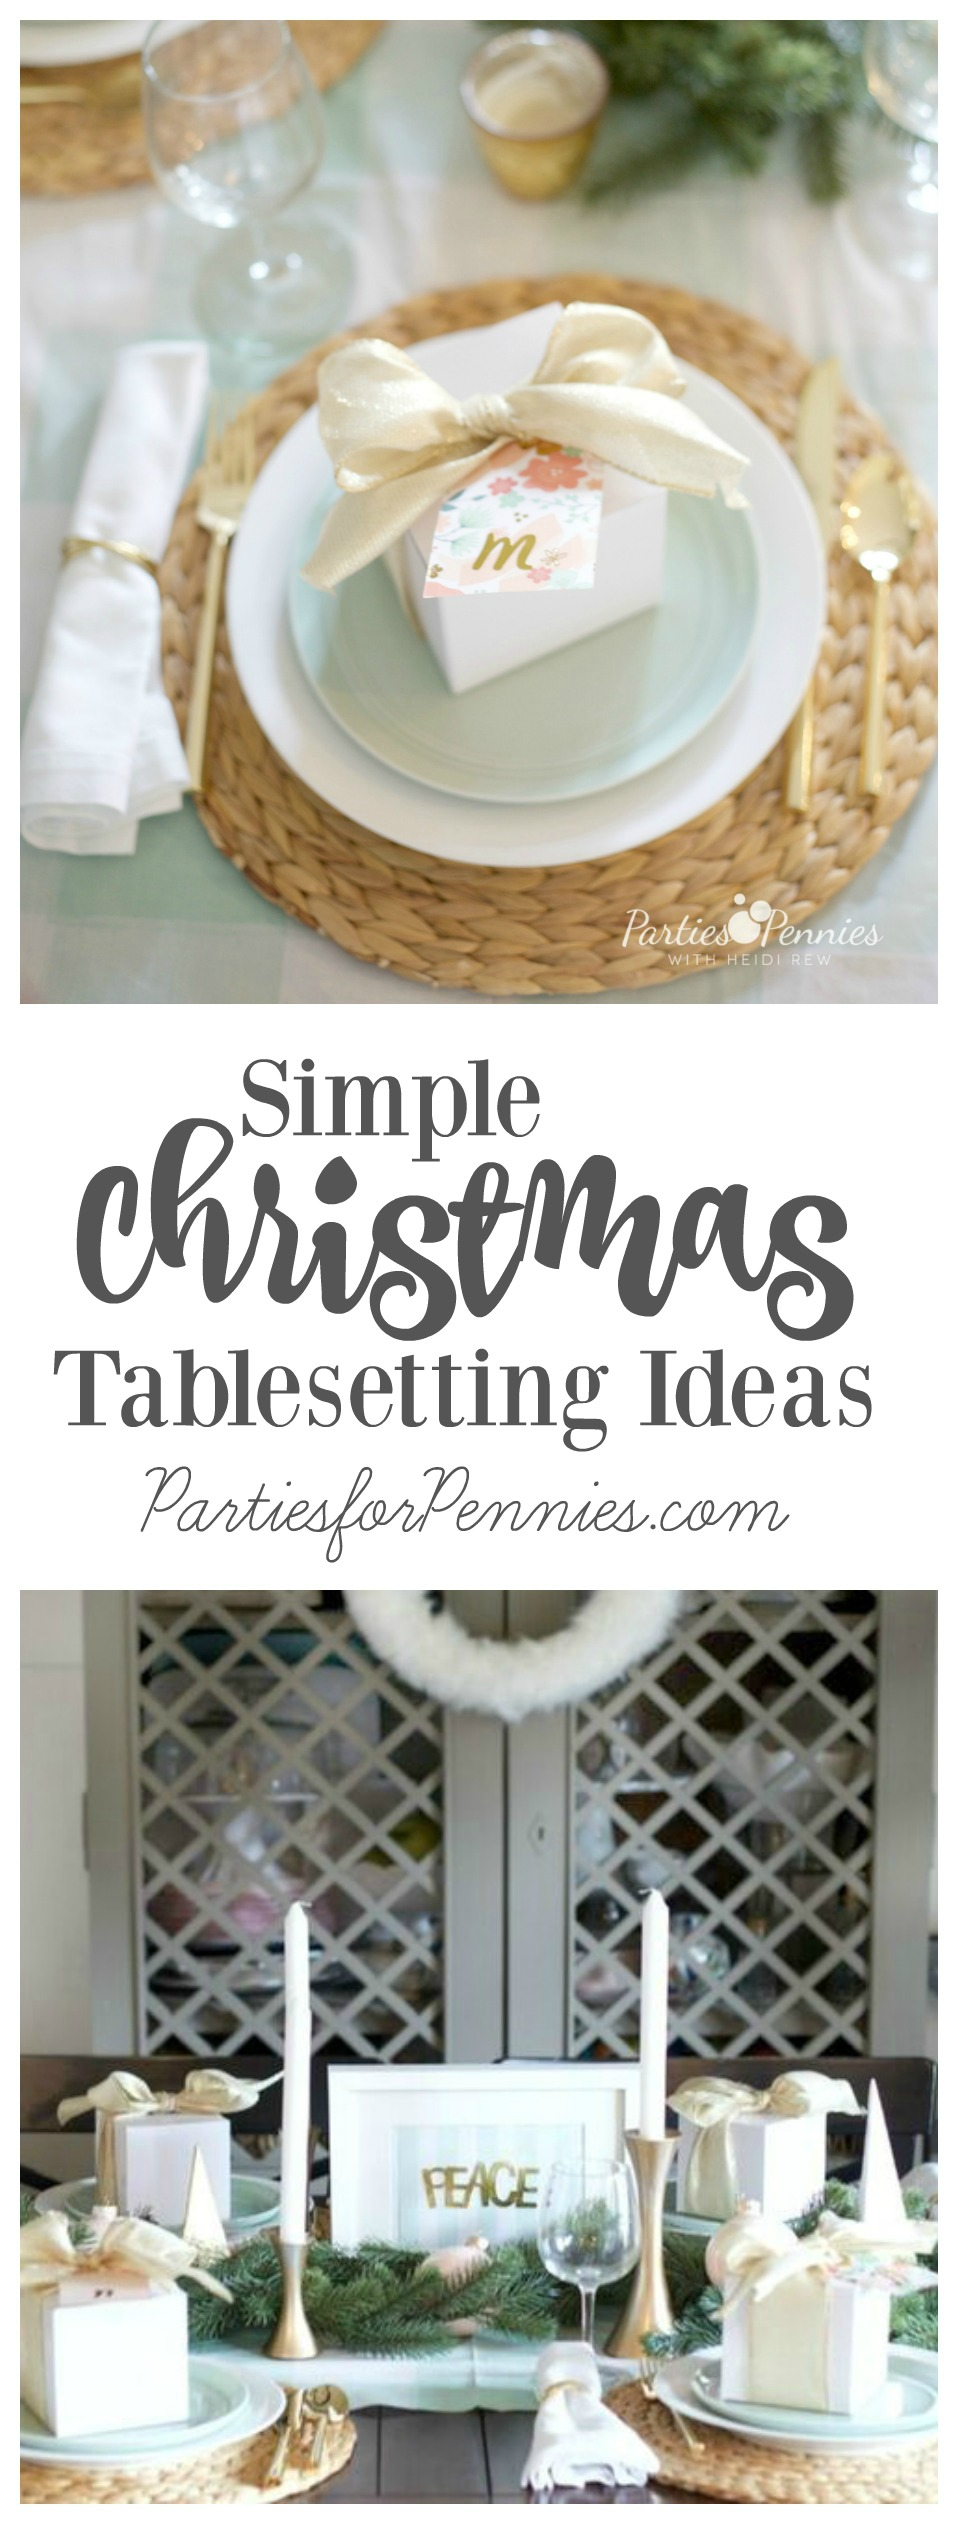 simple christmas tablesetting ideas by partiesforpenniescom christmas dinner party entertaining tips - Simple Christmas Dinner